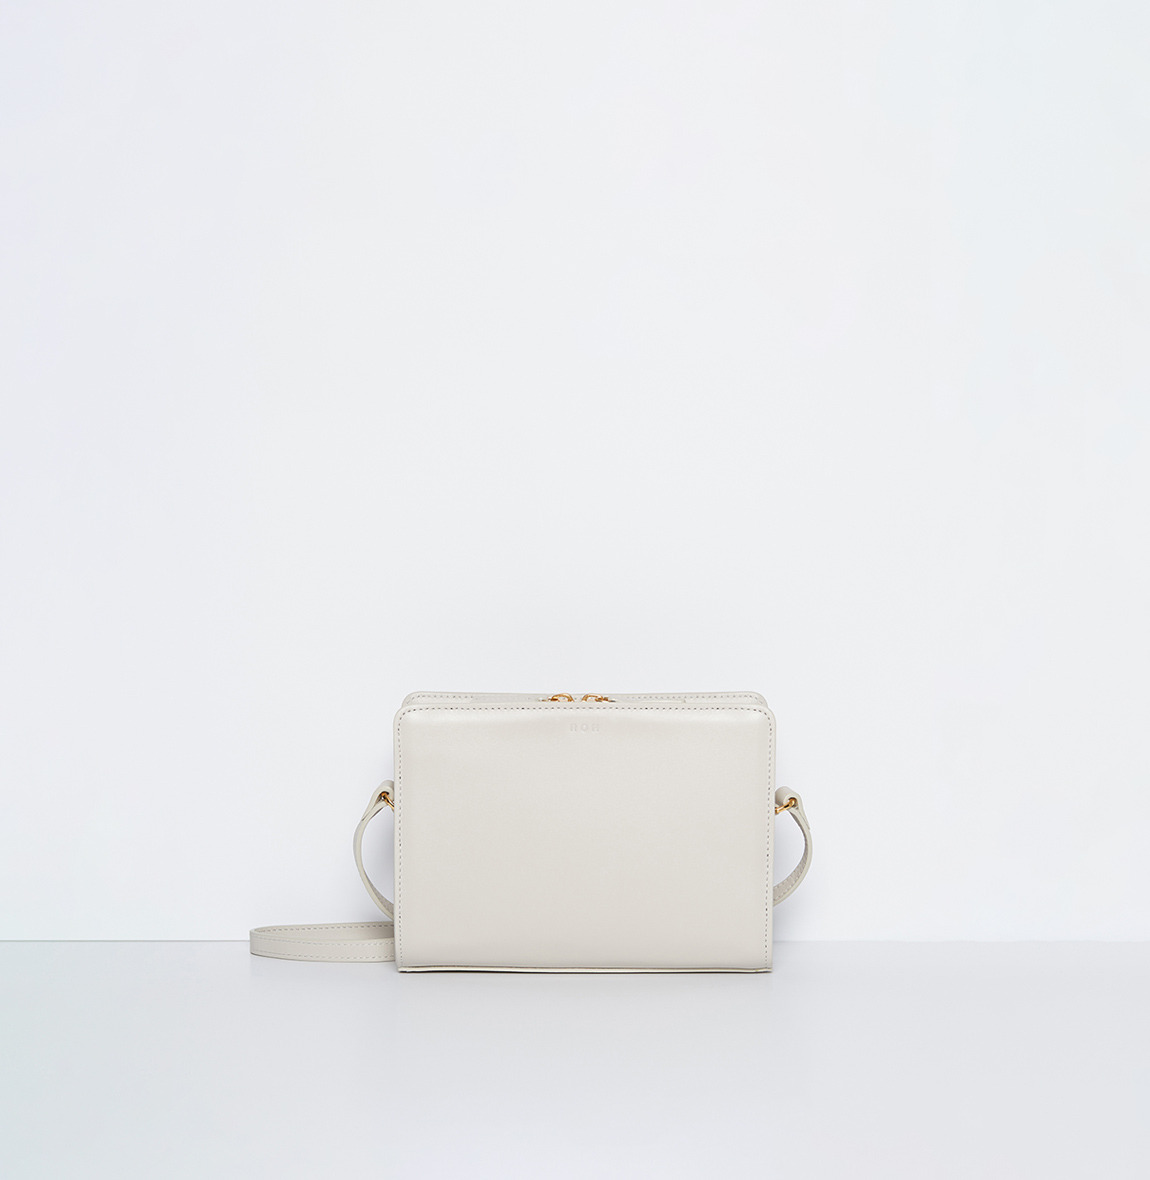 ROH Mini squarebag Ivory